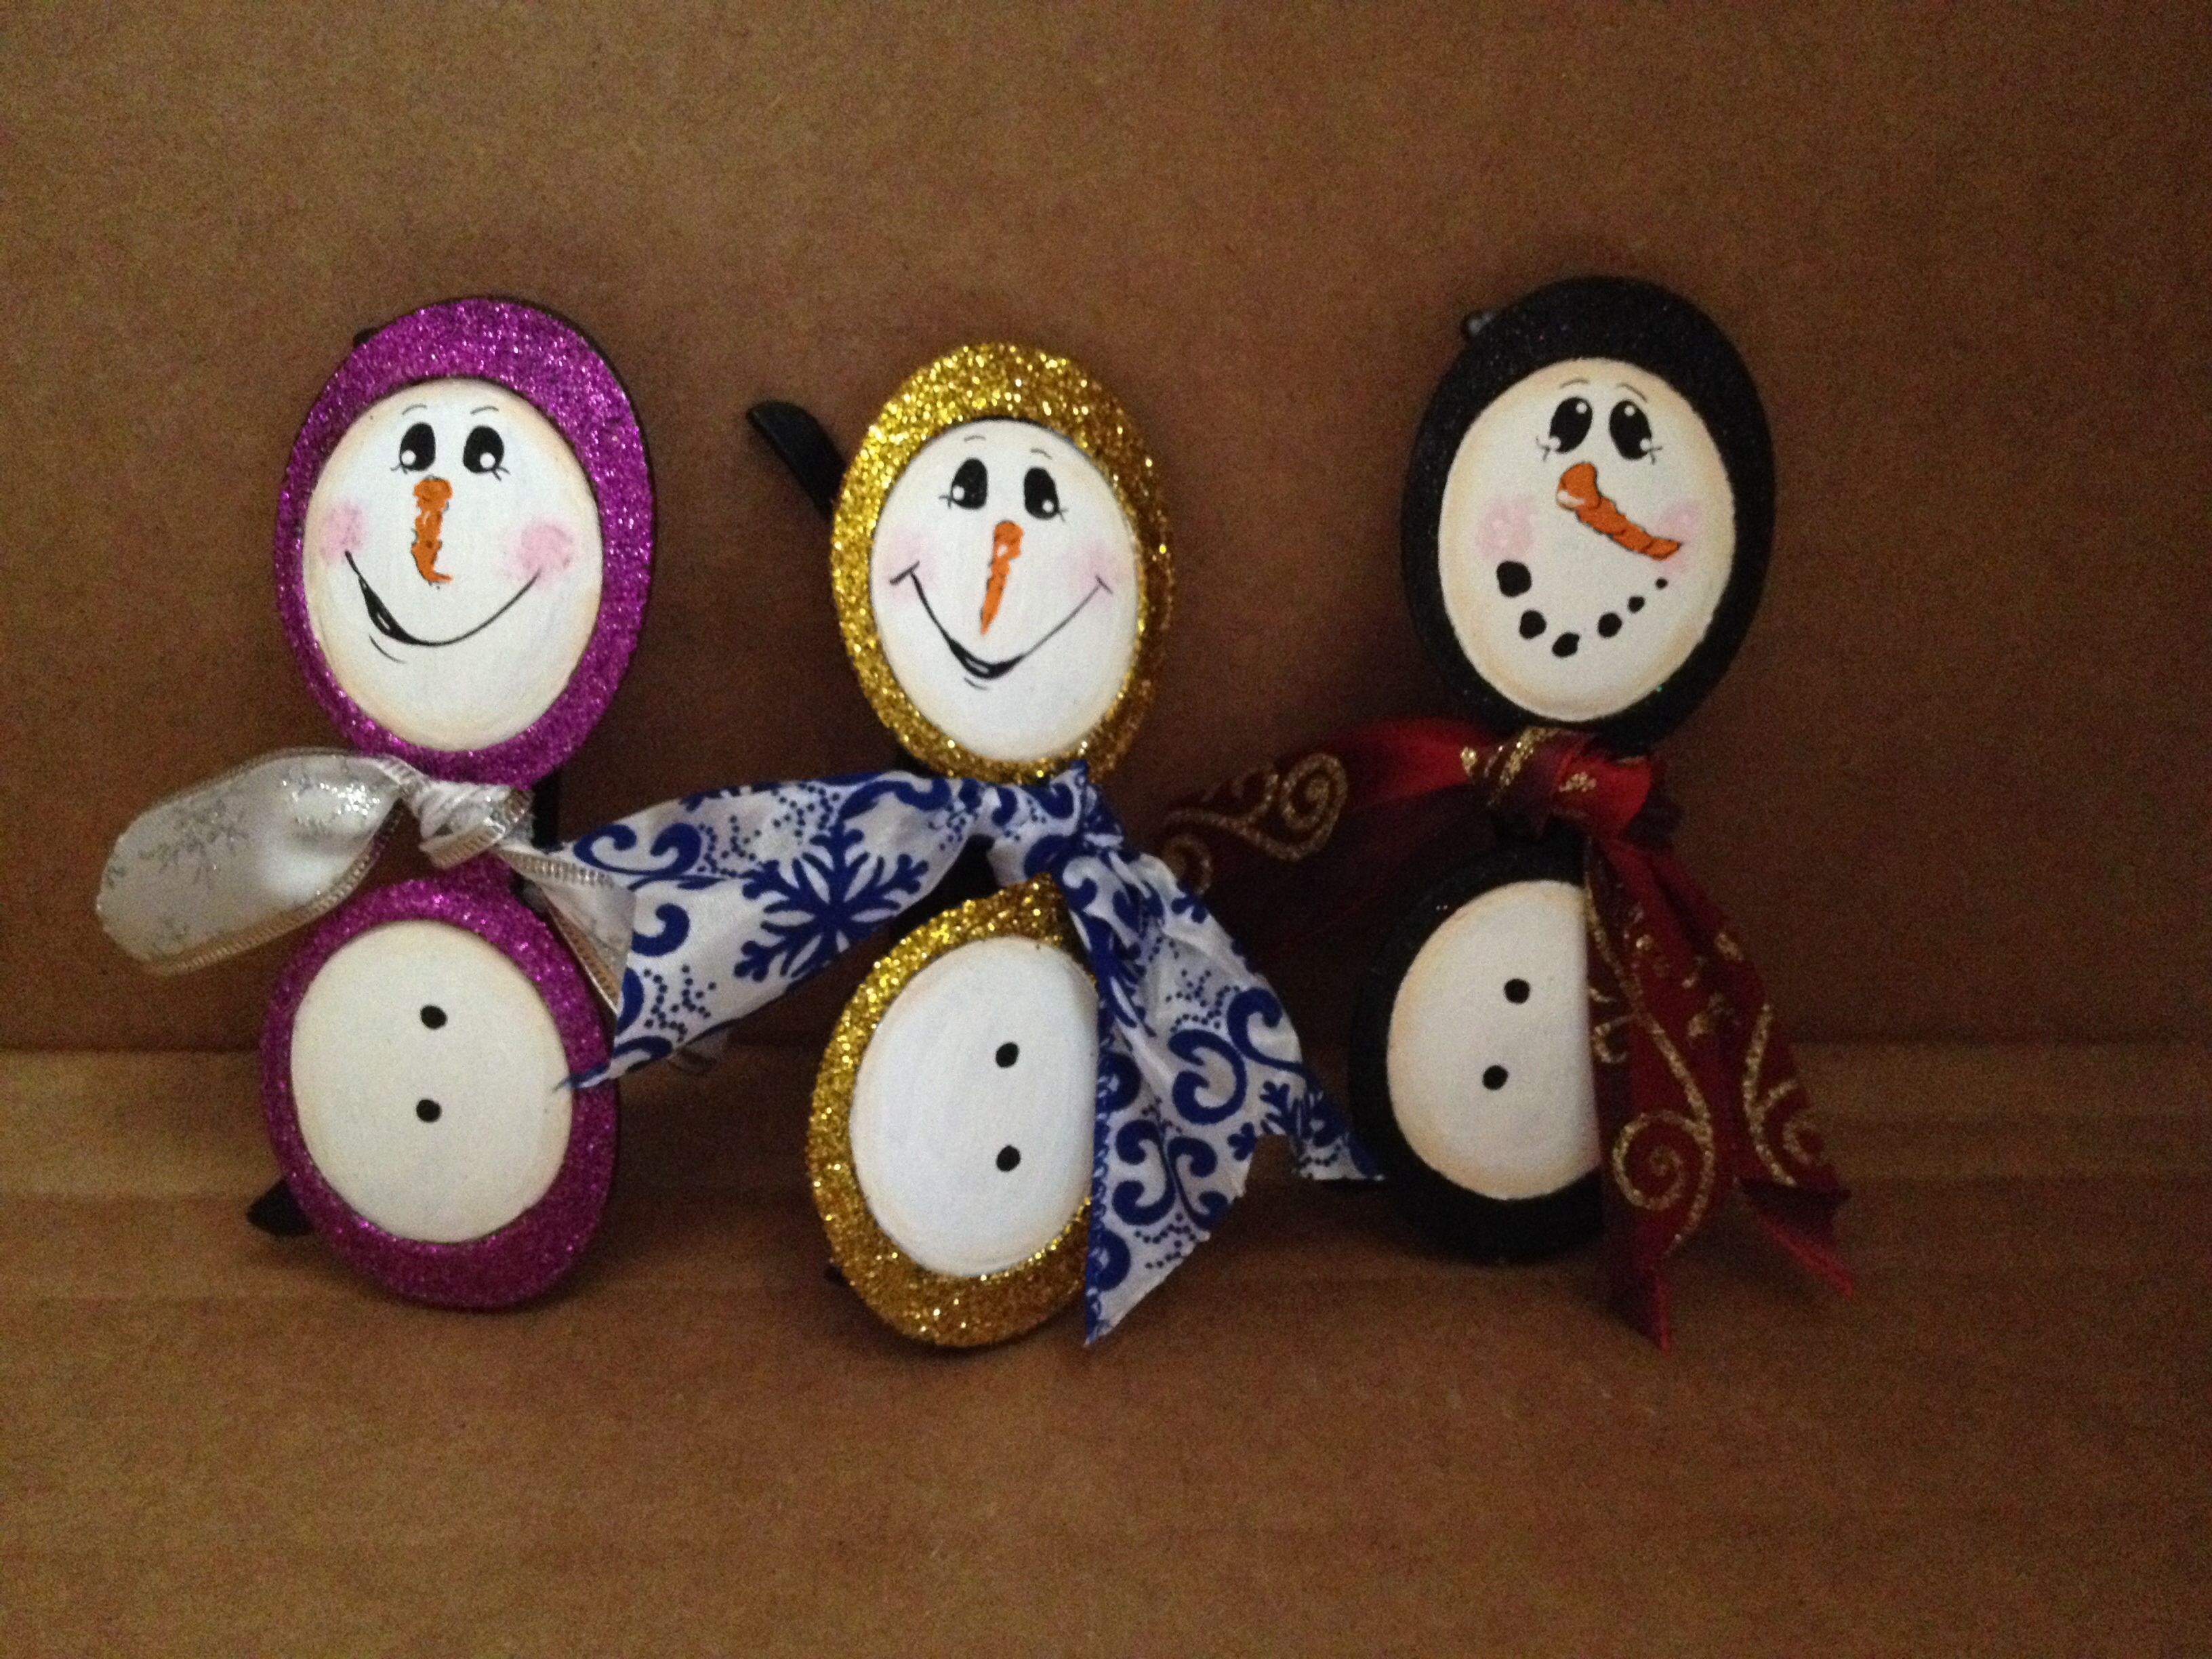 Sunglasses Snowman Xmas Crafts Christmas Crafts Holiday Crafts